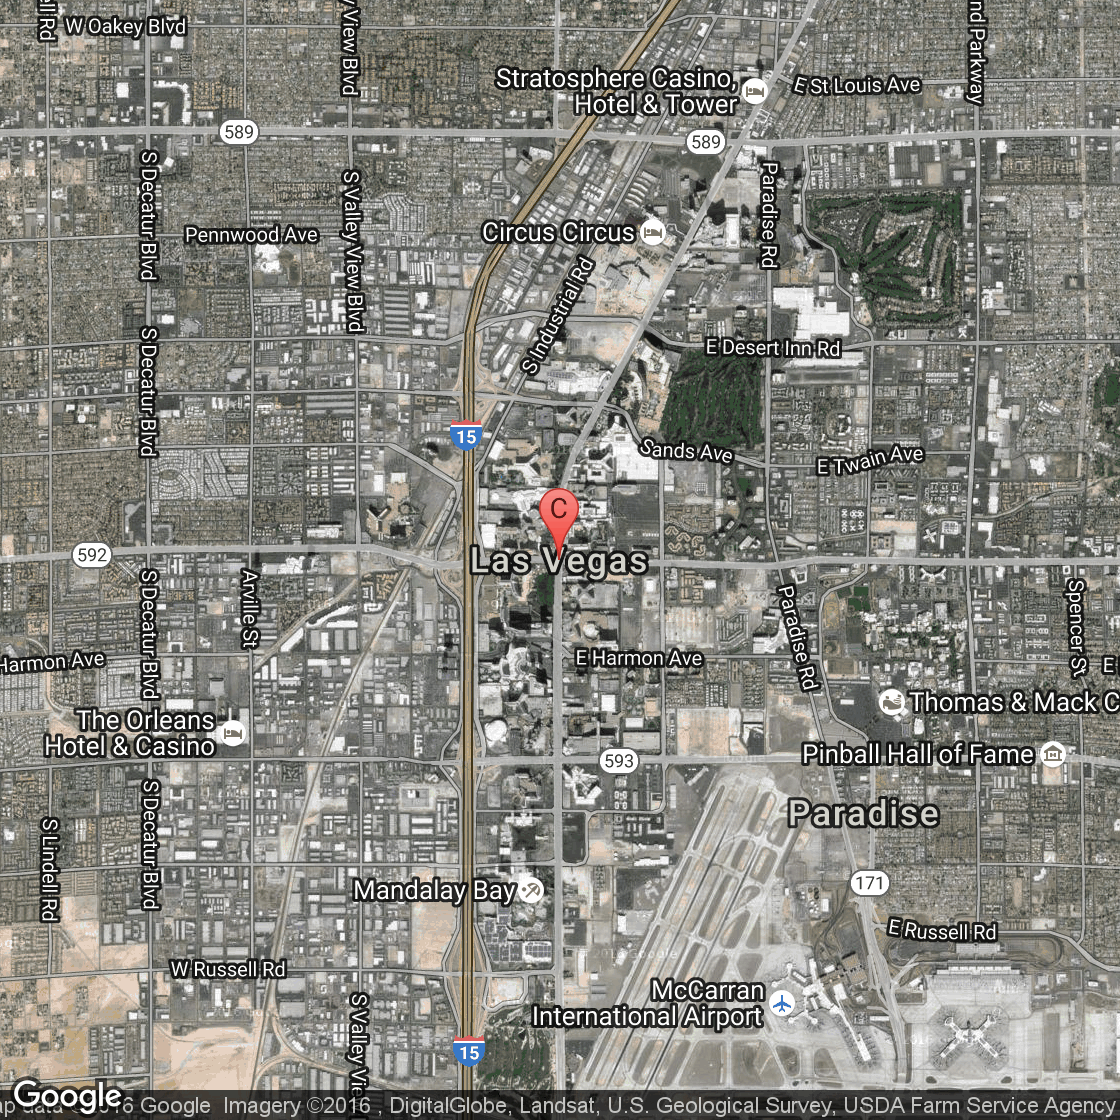 How to Get to the Silverton Casino From the Las Vegas ...